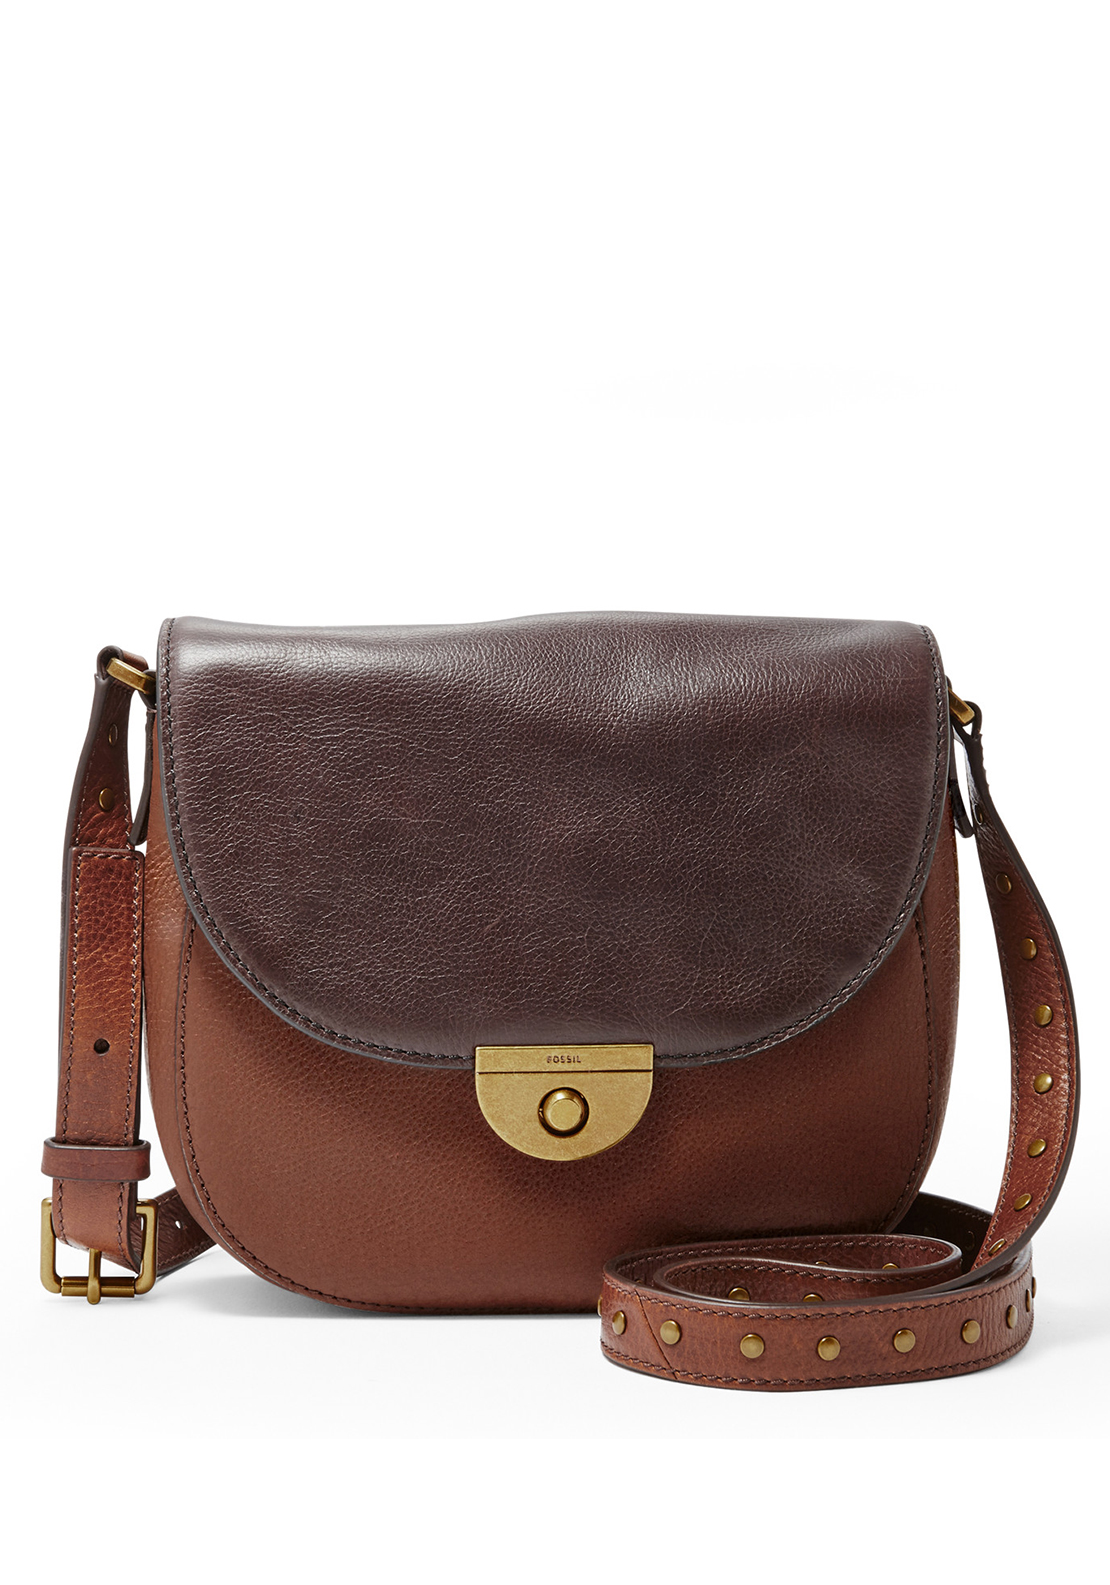 Fossil Emi Leather Saddle Crossbody Bag, Brown